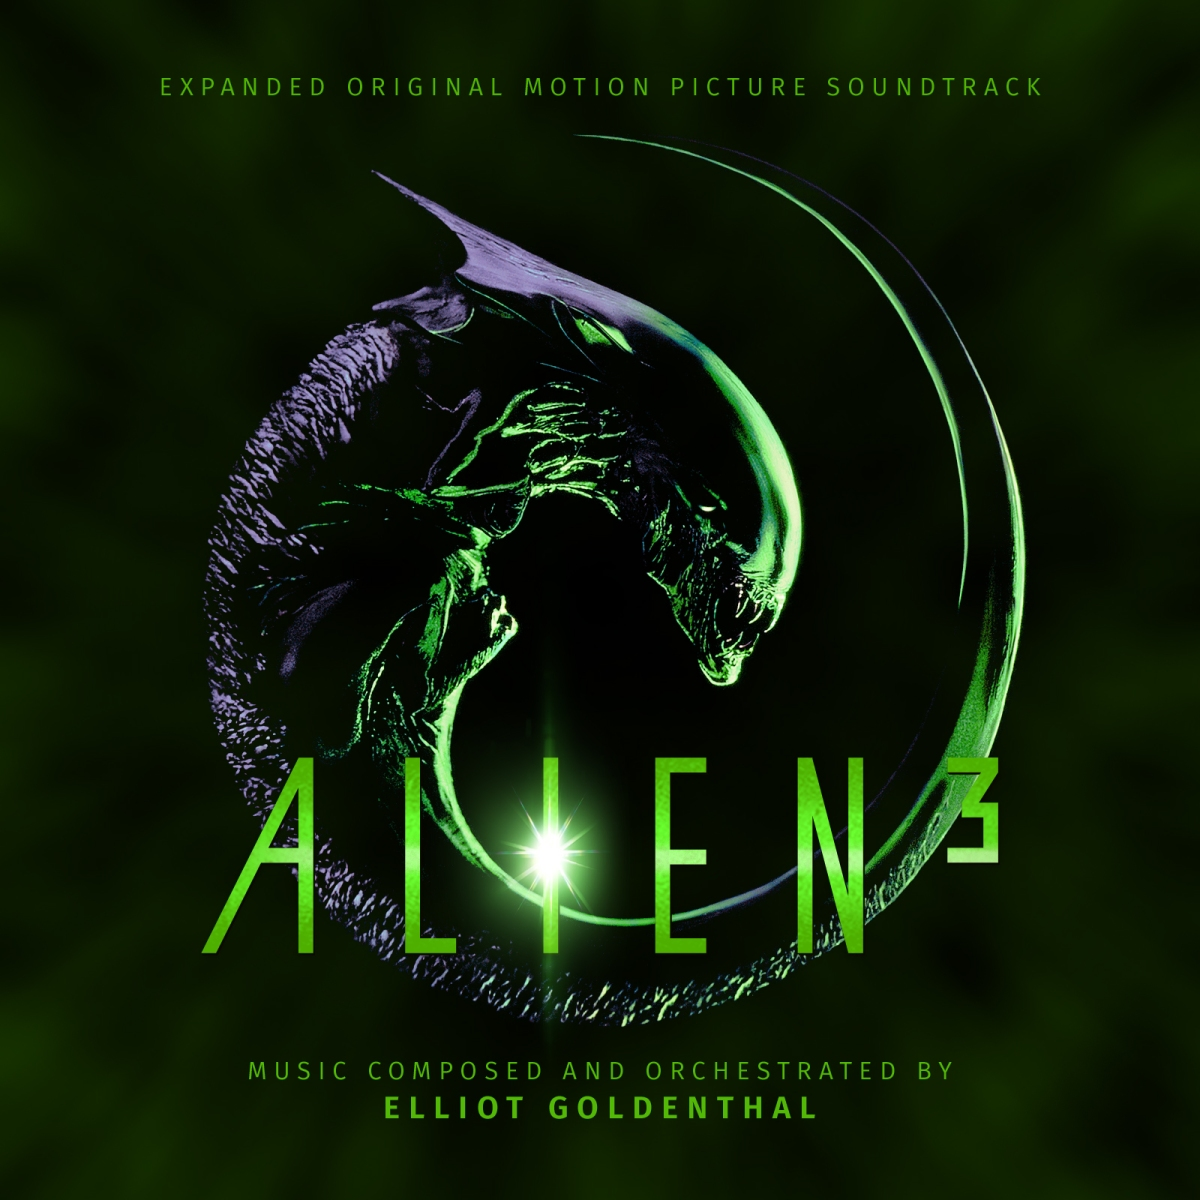 Alien 3. Expanded Original Motion Picture Soundtrack (Limited Edition 2-CD Set)